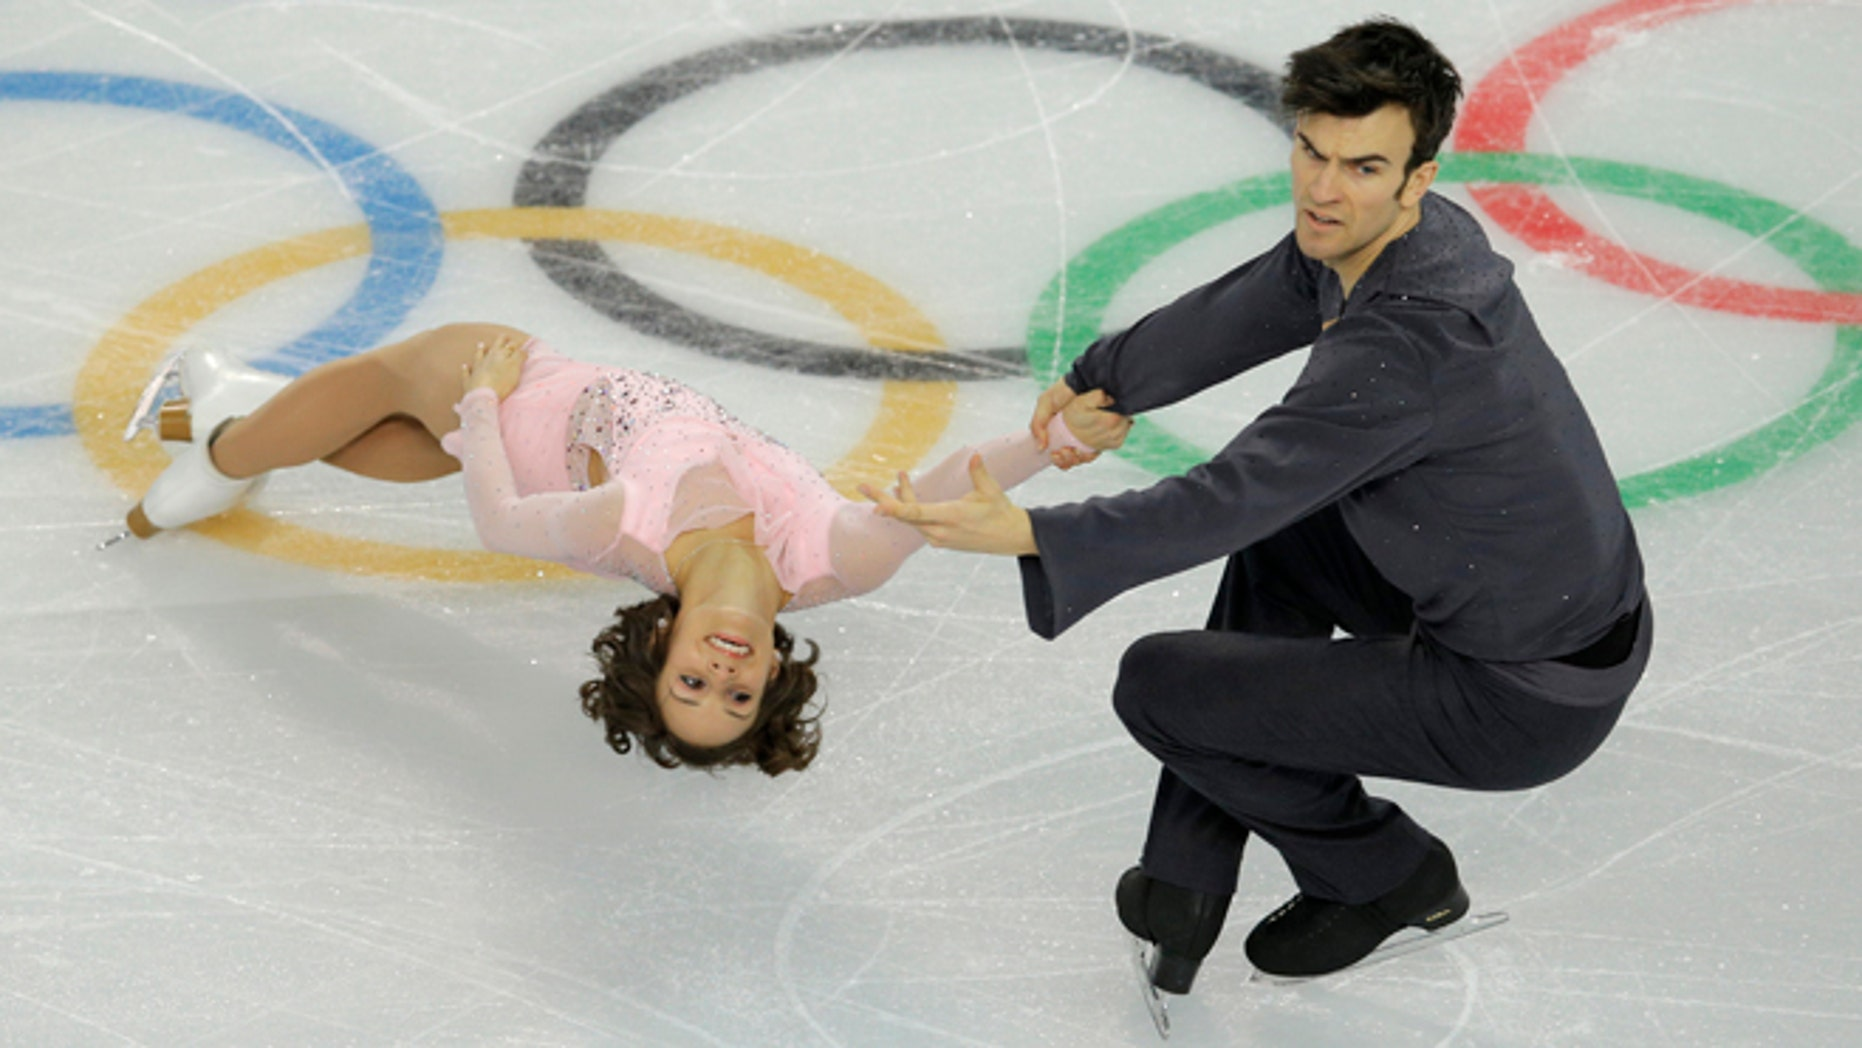 Feb. 6, 2014: Meagan Duhamel and Eric Radford of Canada compete in the team pairs short program figure skating competition at the Iceberg Skating Palace during the 2014 Winter Olympics, in Sochi, Russia.